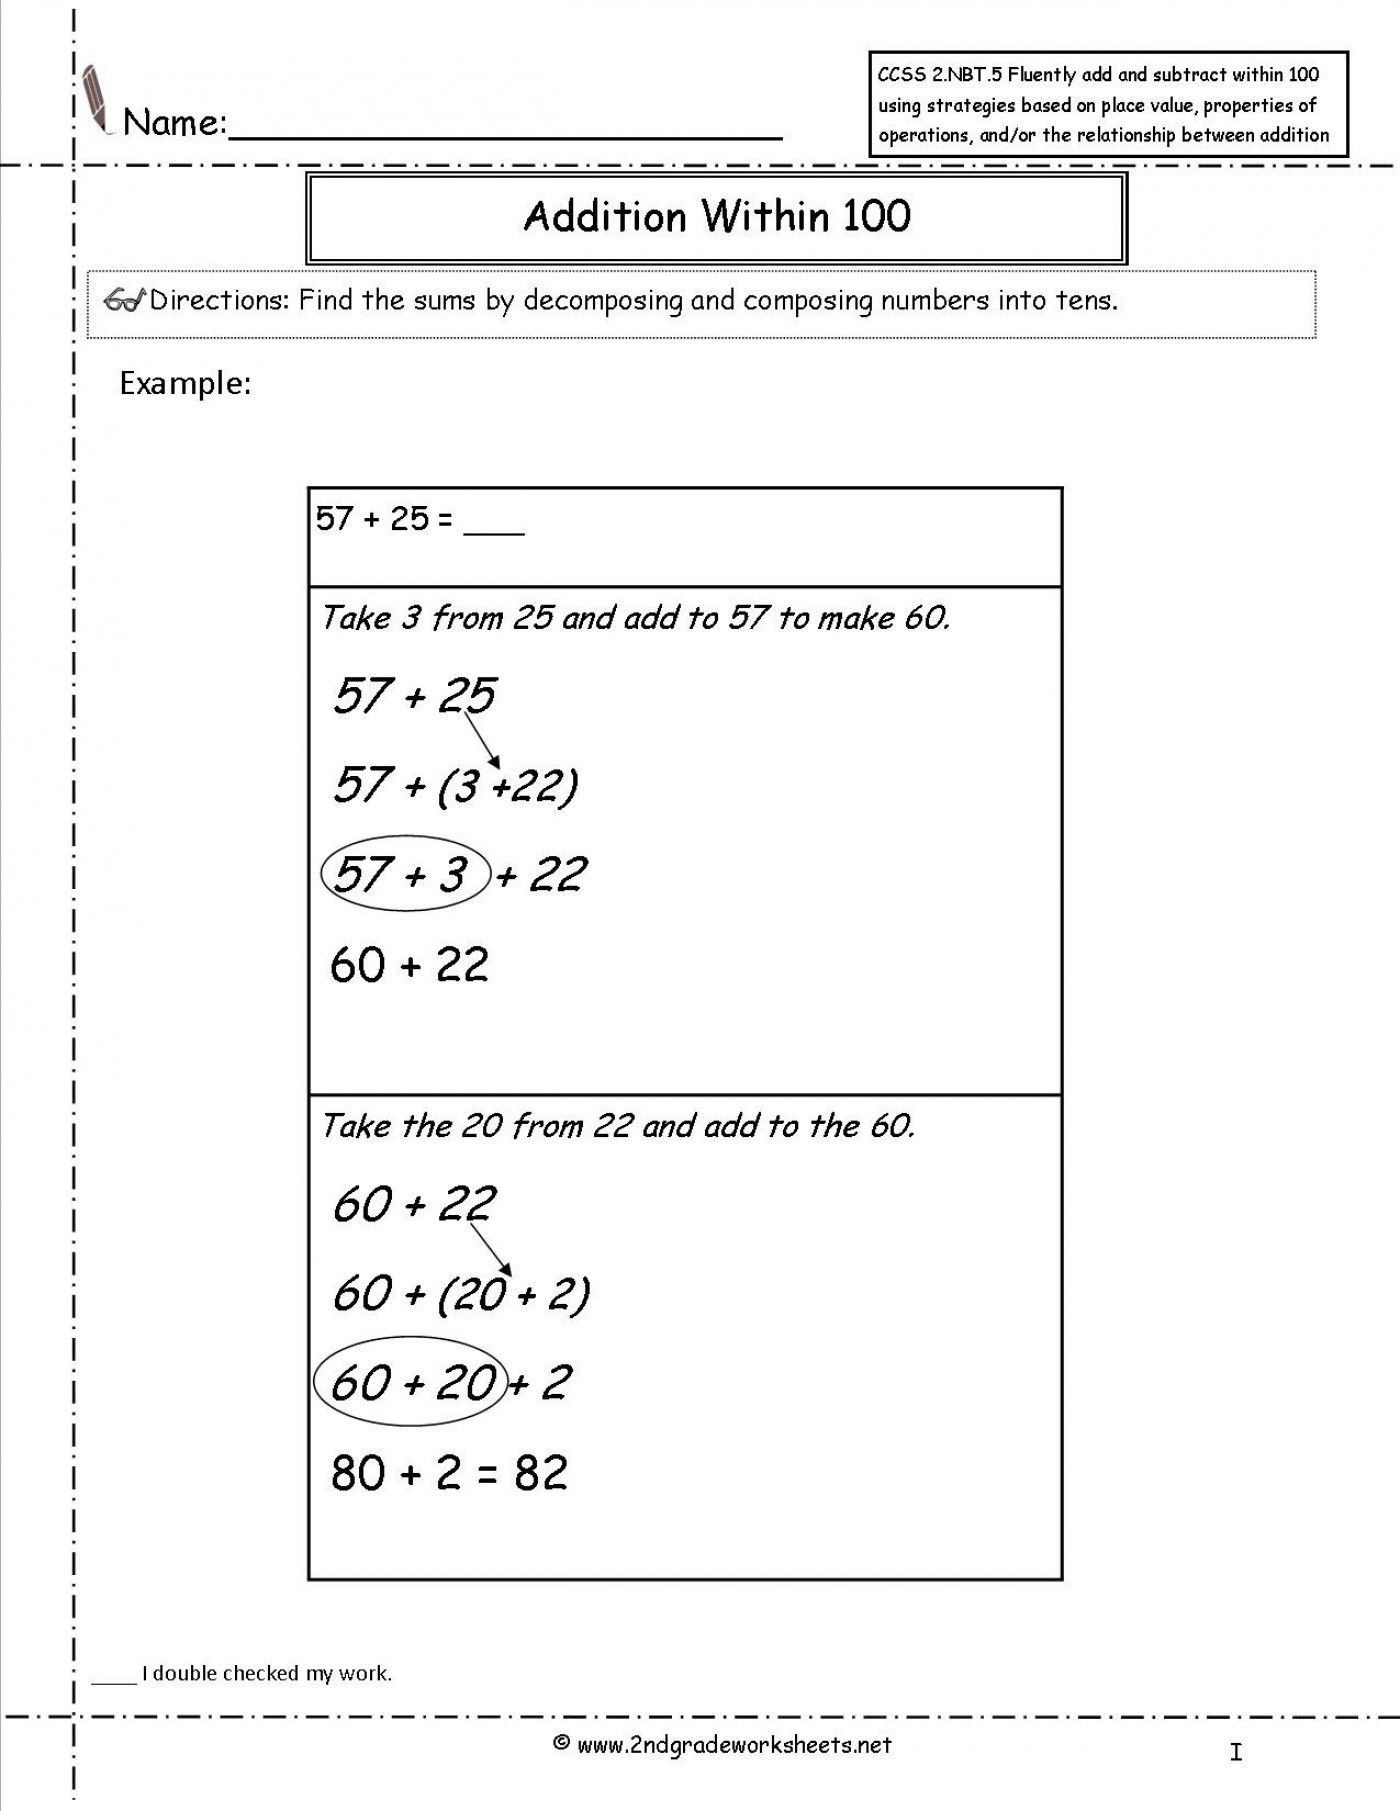 39 Simple Common Core Math Worksheets For You